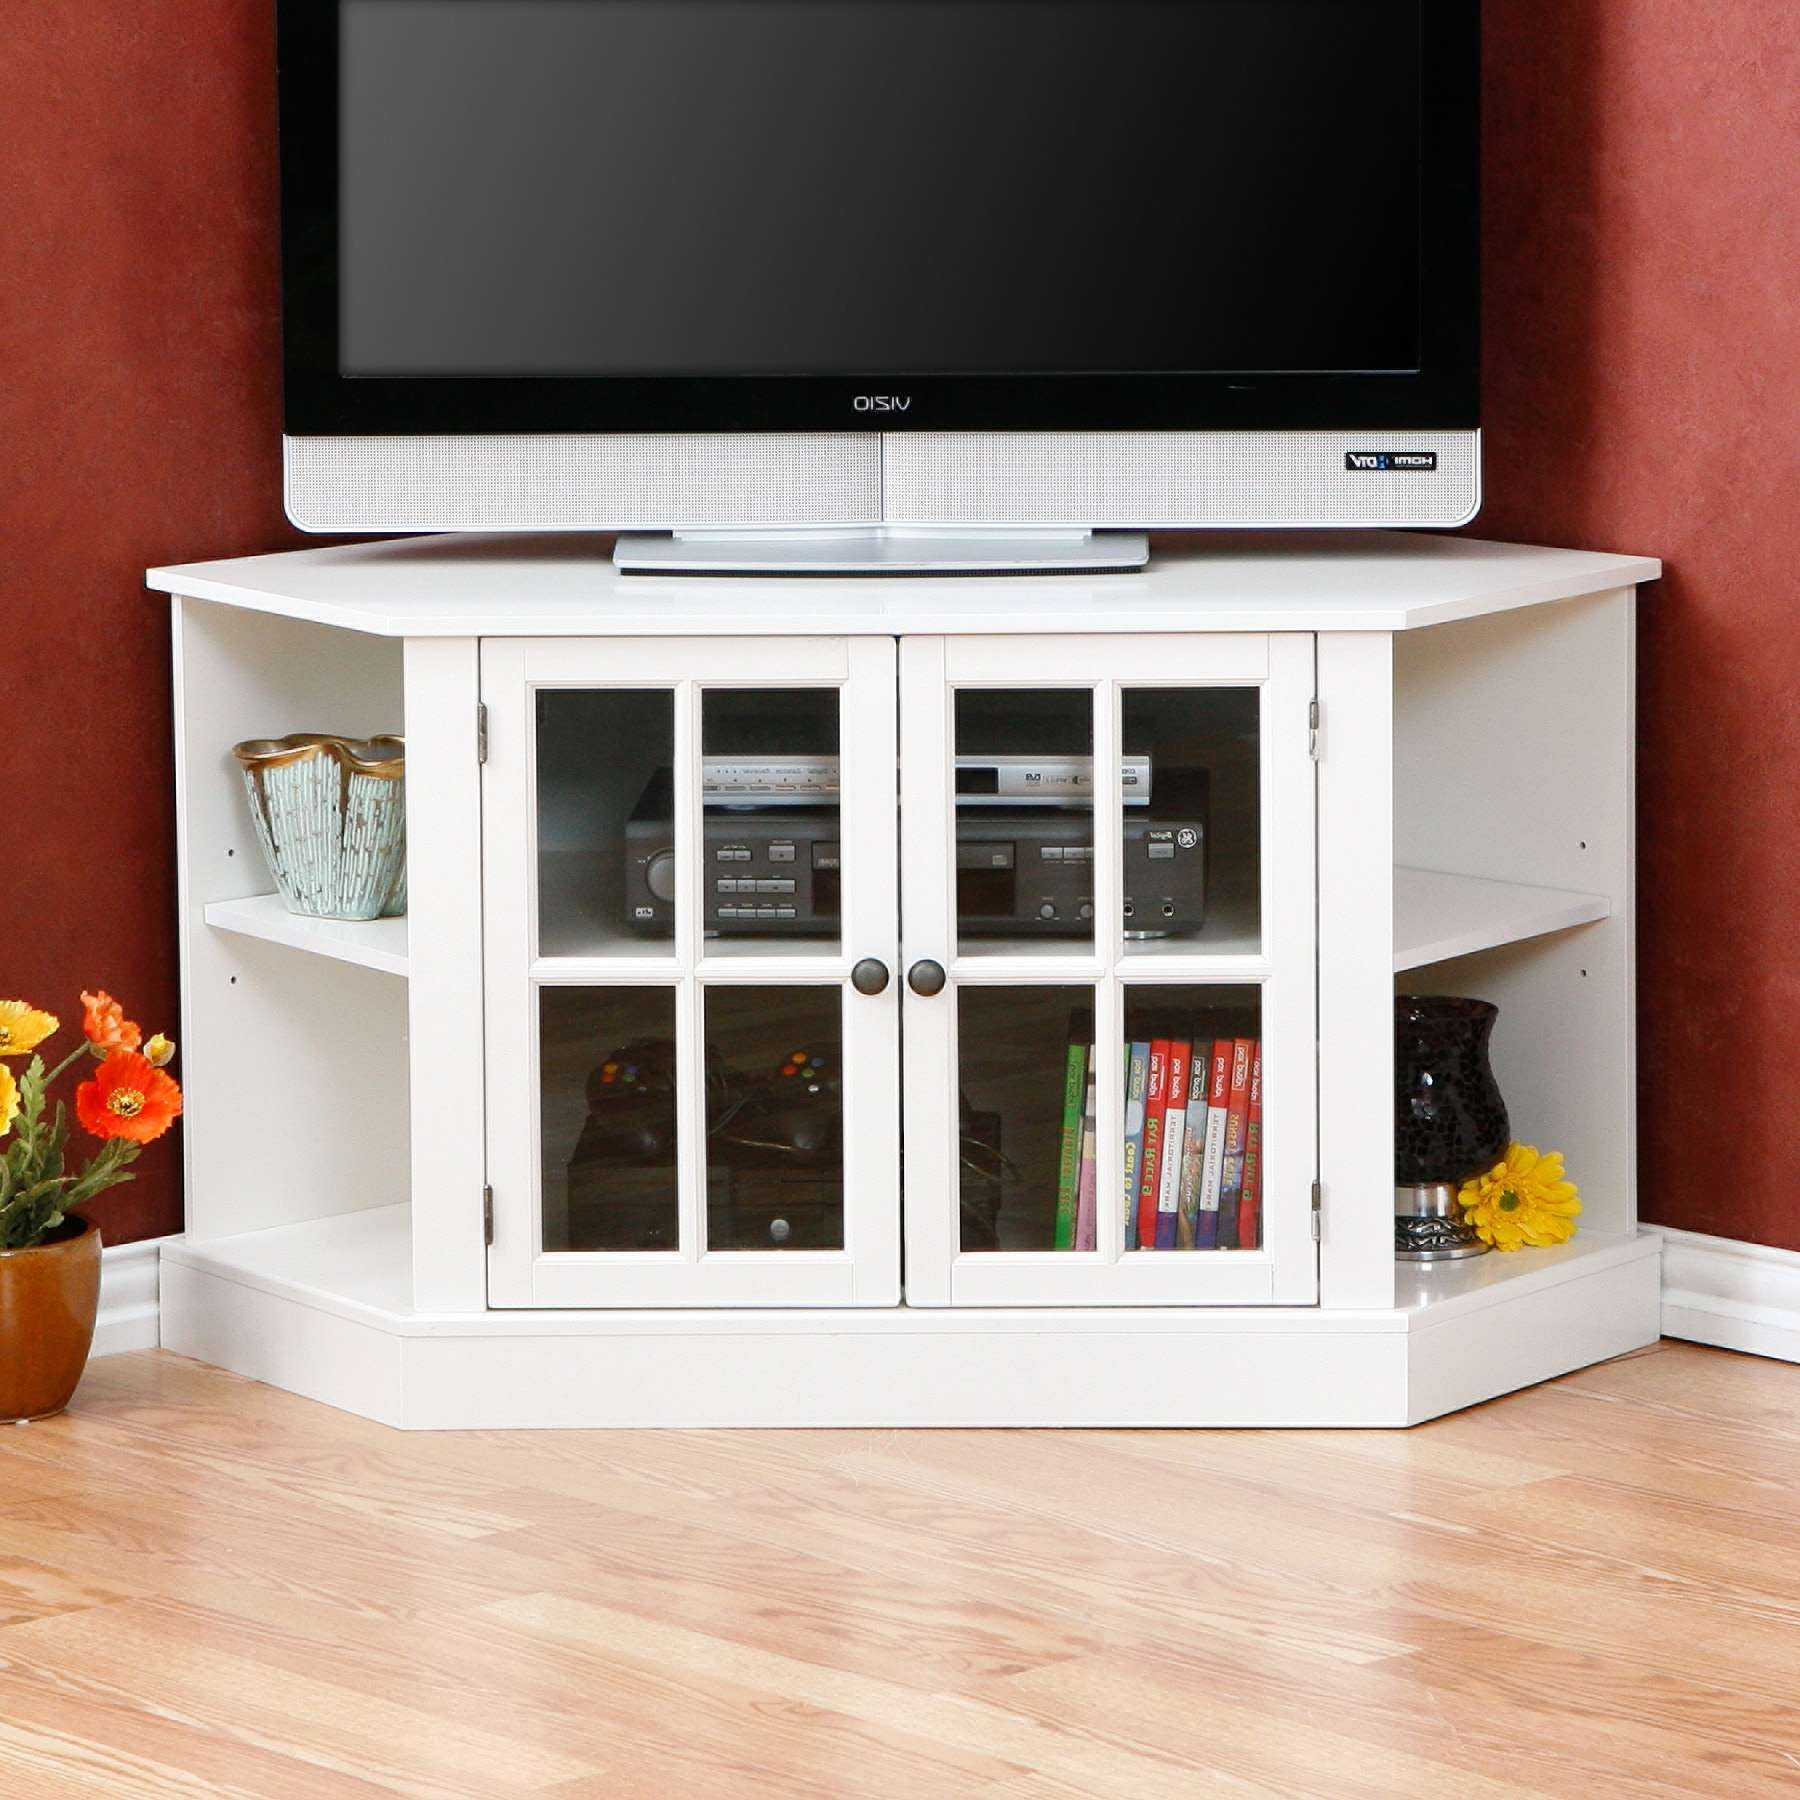 Unique Corner Tv Stands Gallery Ideas Tall Stand For Small Bedroom Regarding Unique Corner Tv Stands (View 5 of 15)